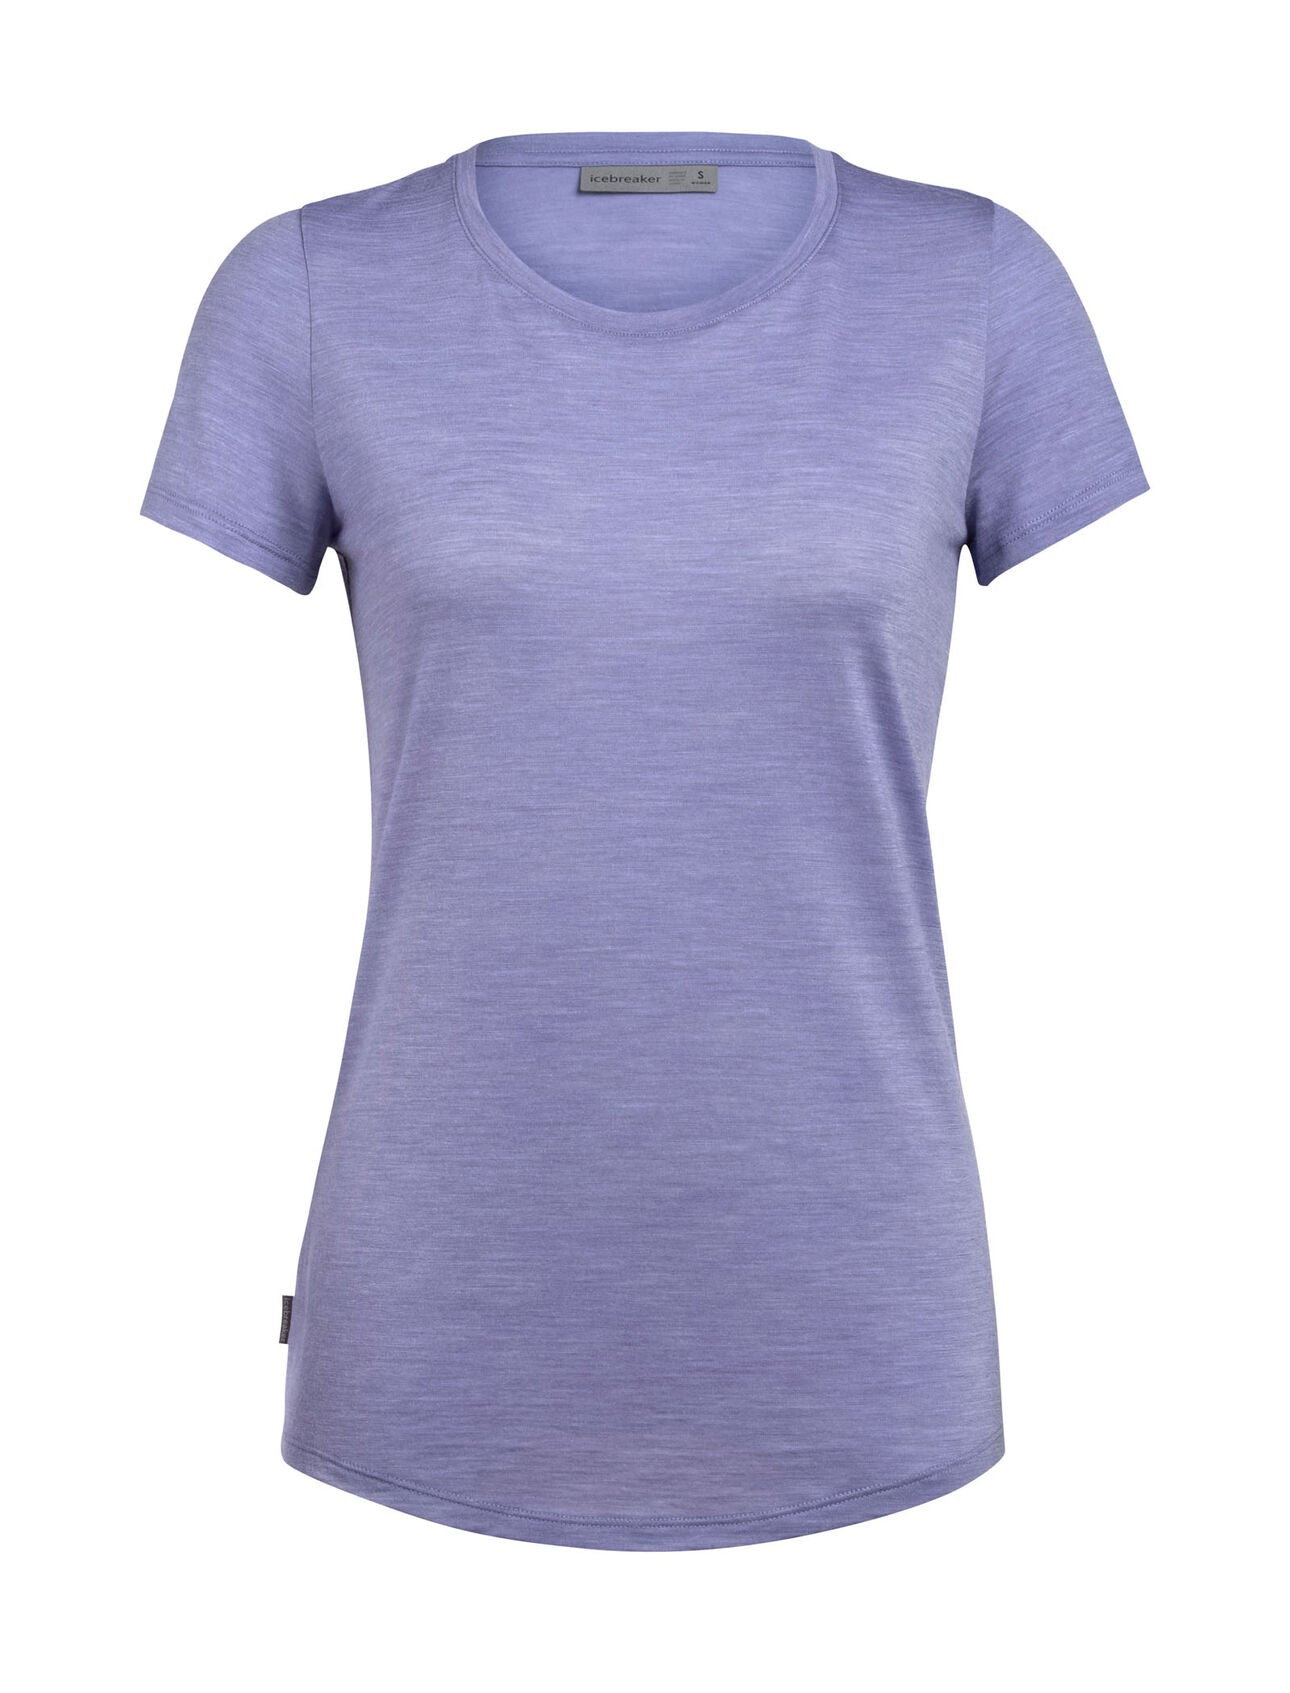 Icebreaker Women's Cool-Lite™ Sphere Short Sleeve Low Crew